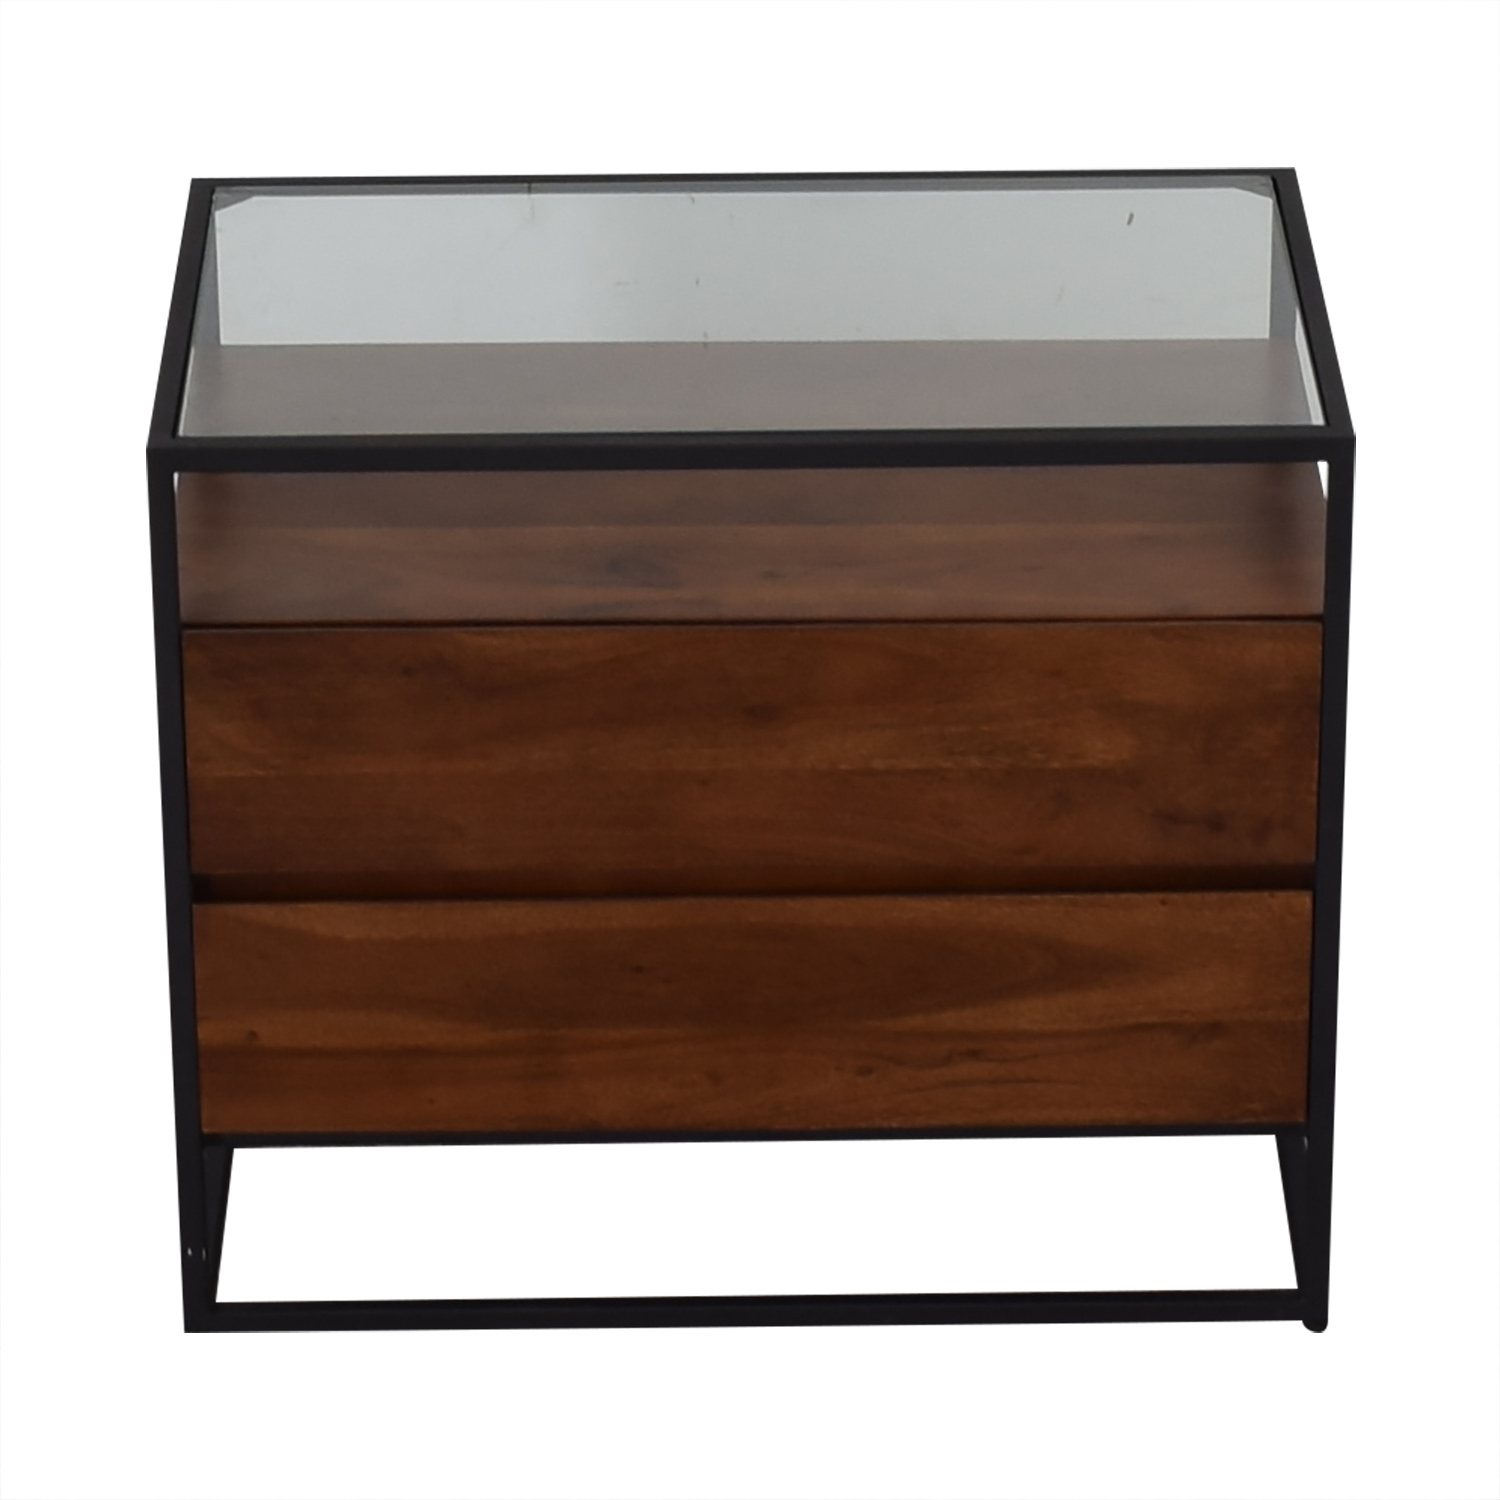 CB2 CB2 Crawford Glass Top Nightstand discount